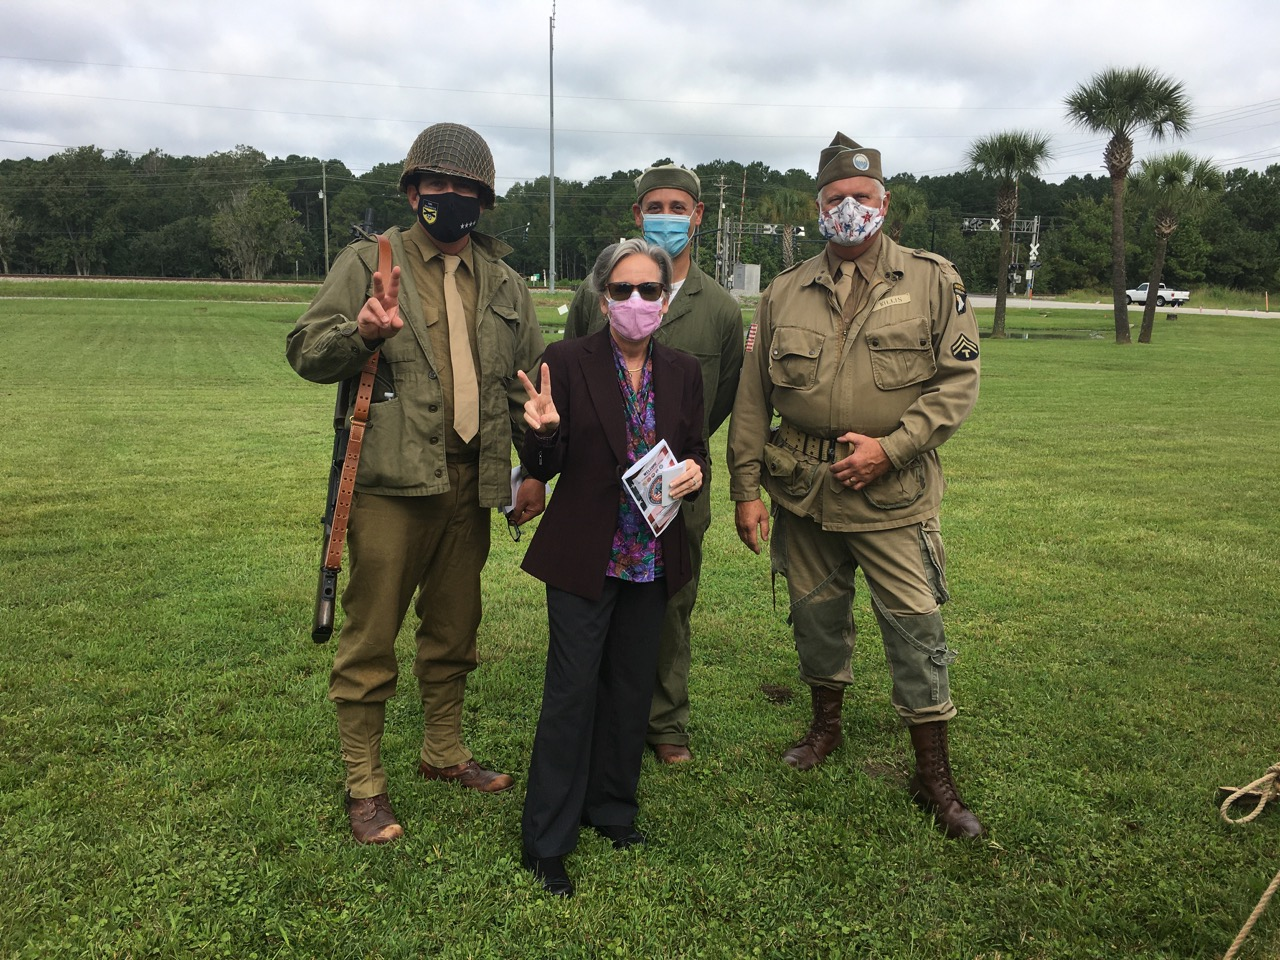 Gayla with military actors